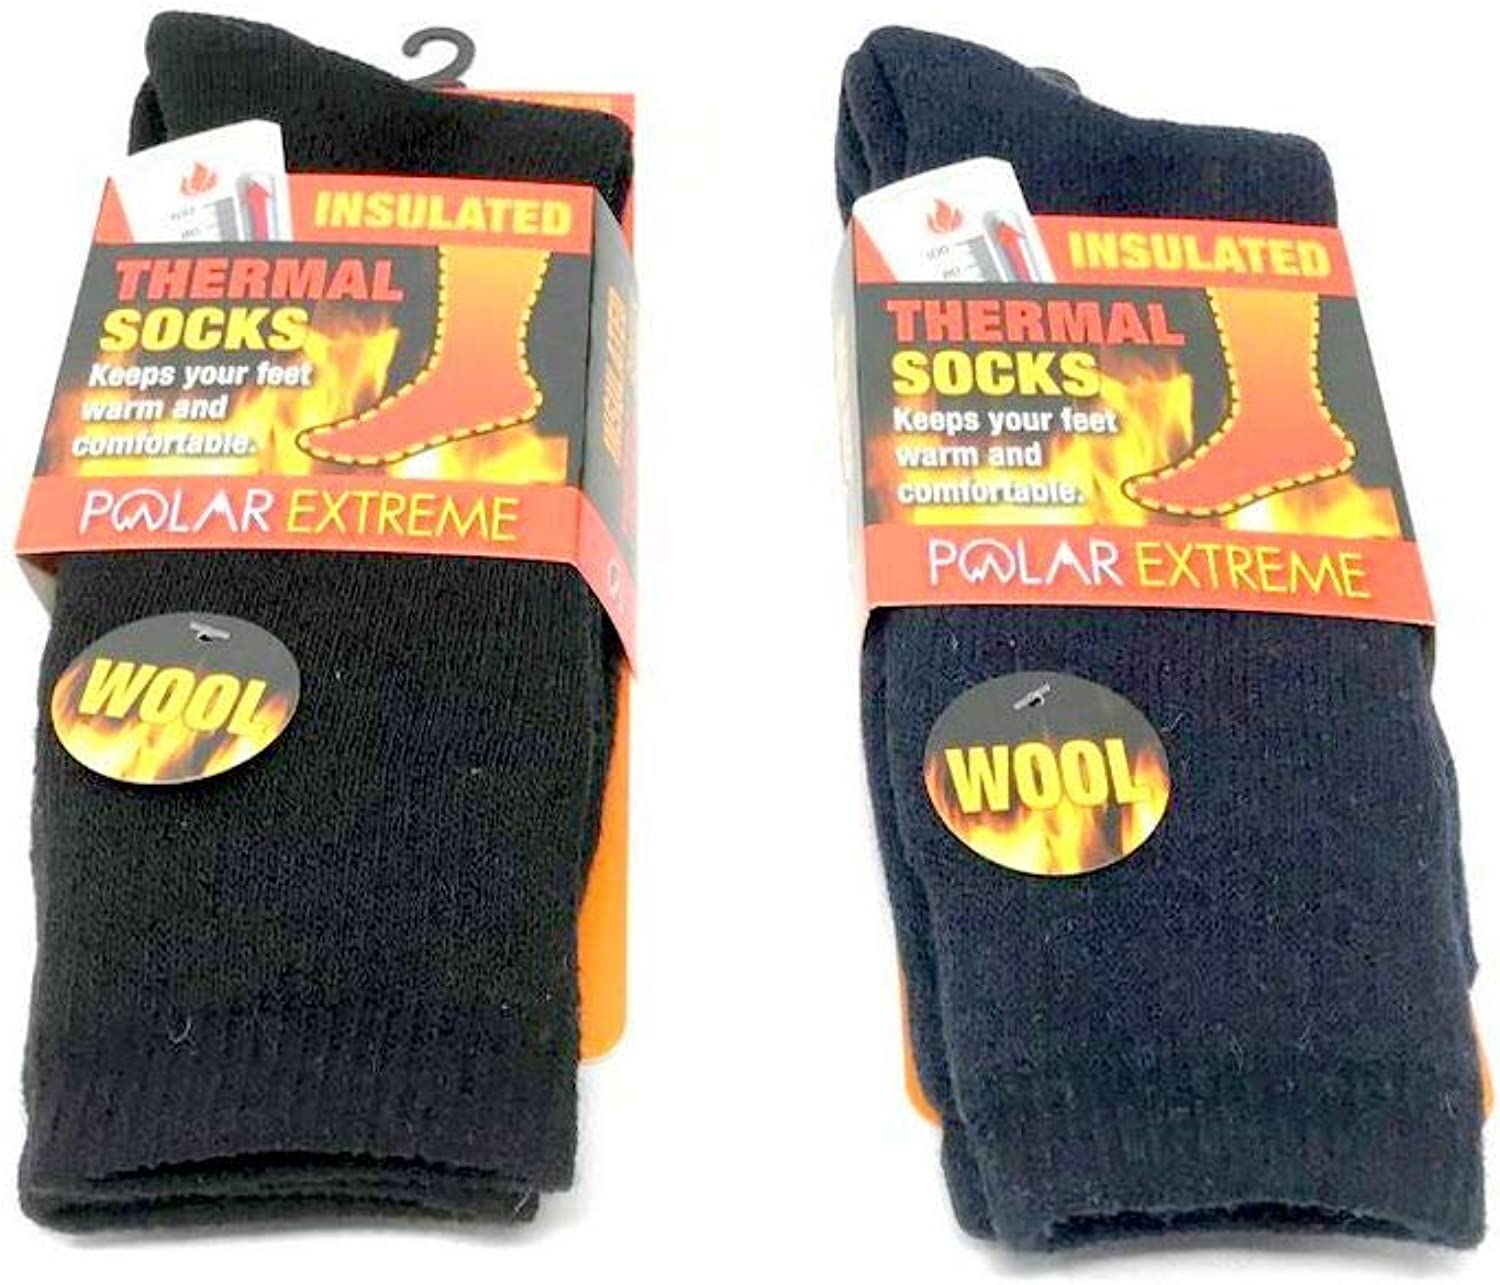 013db54aa WOOL Men's Men's Men's Polar Extreme Insulated Thermal Winter Socks Size  10-13 Soft Warm WOOL 9197a1